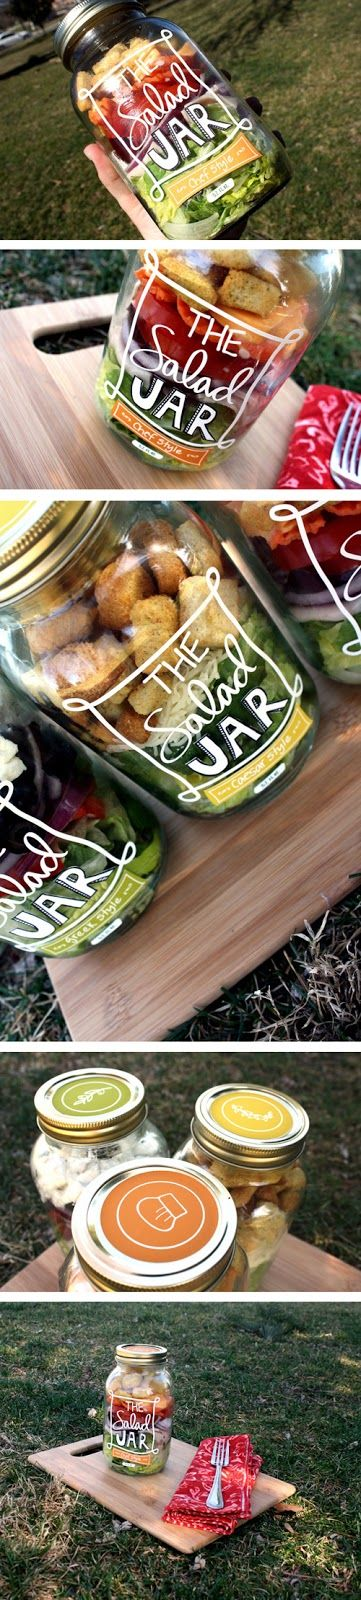 The Salad Jar. #packaging in action. Such a clever way to pack a tasty lunch or even make salads for an entire week. PD